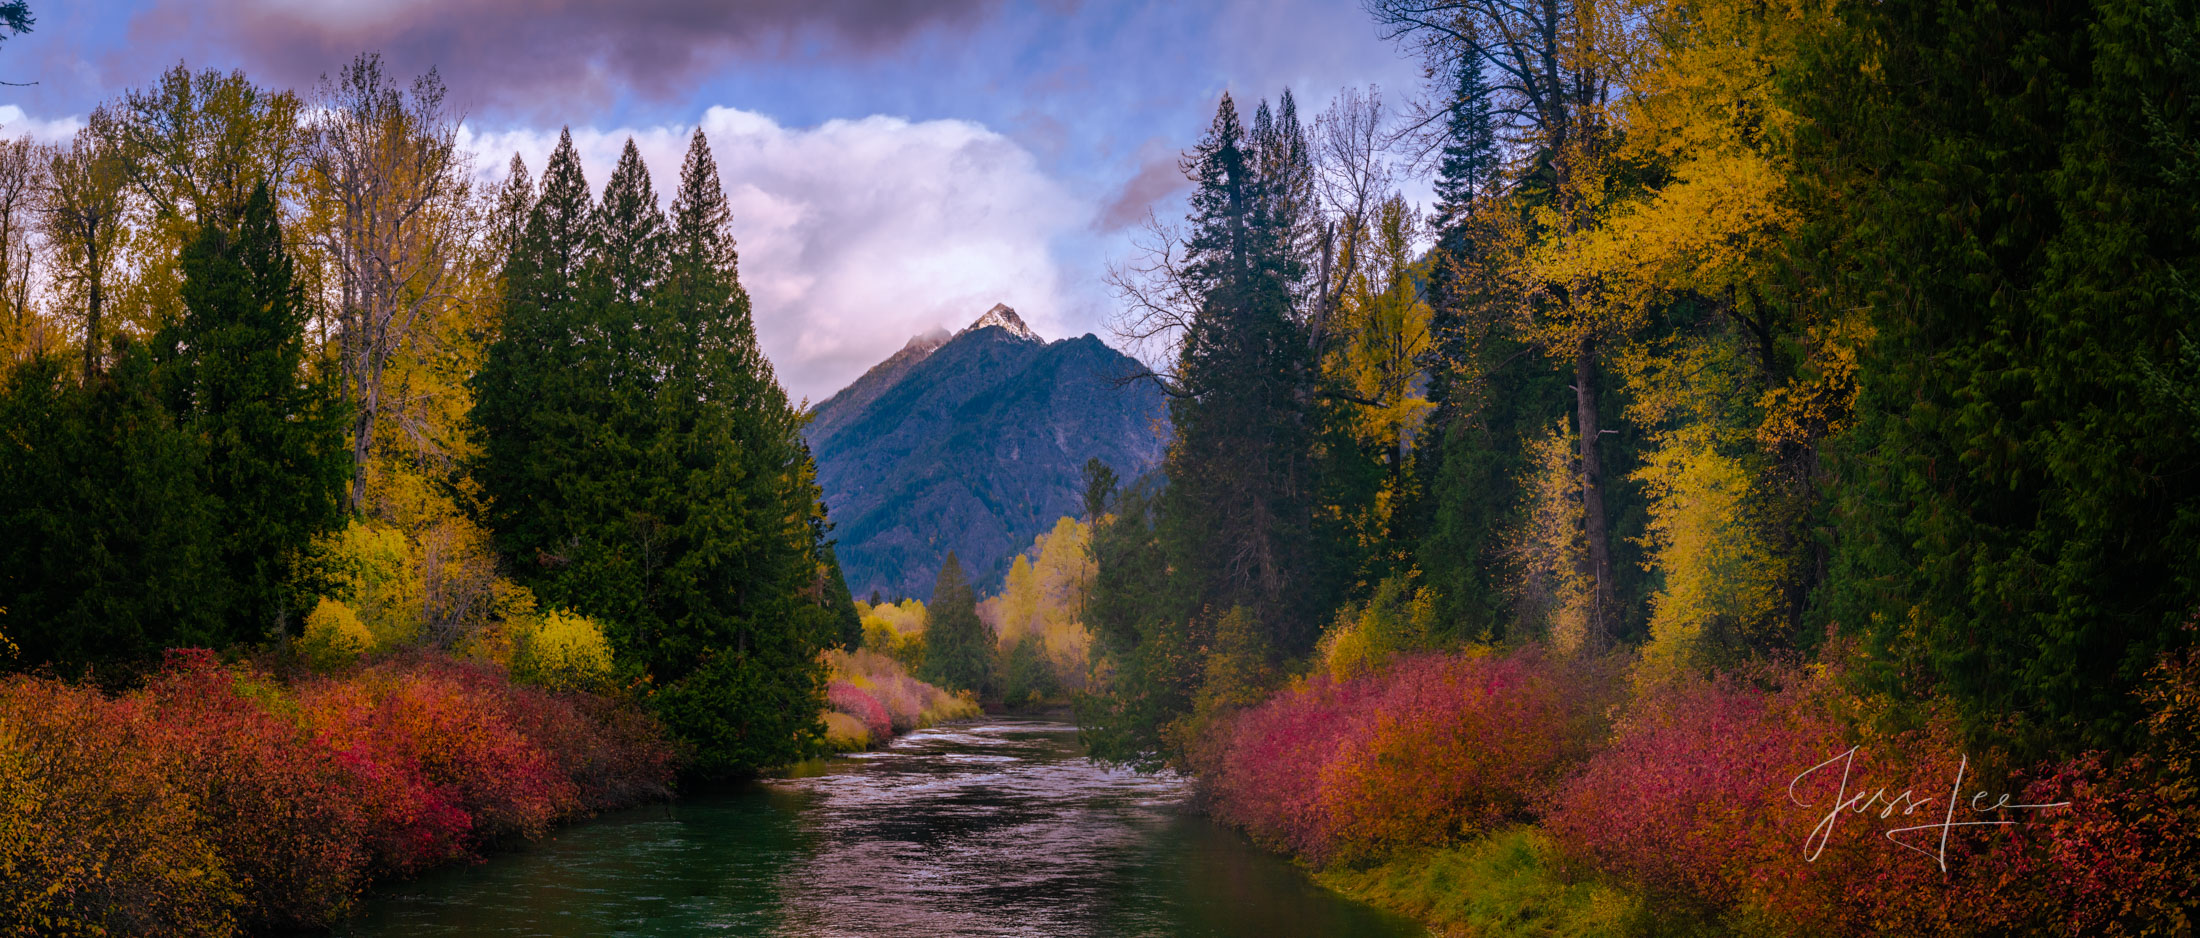 A Limited Edition, Fine Art photograph of a beautiful scene of brilliant fall colors along the Wenatchee River in Washington...